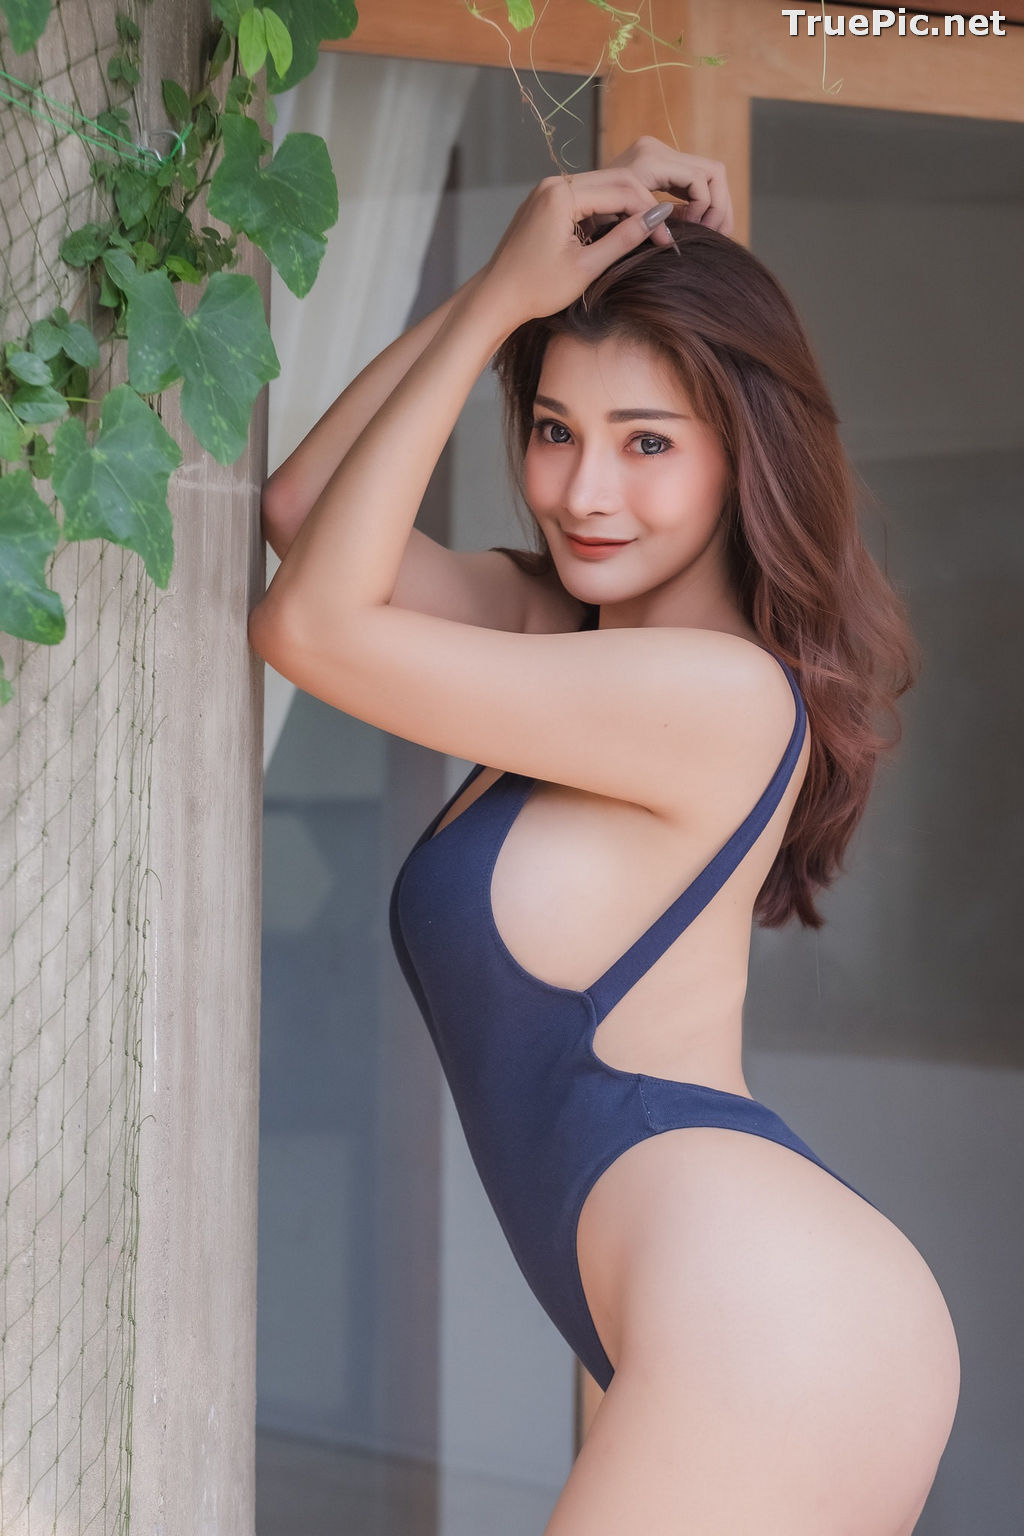 Image Thailand Model - Porntapawee Sripreserth - Concept Sexy One Piece - TruePic.net - Picture-2